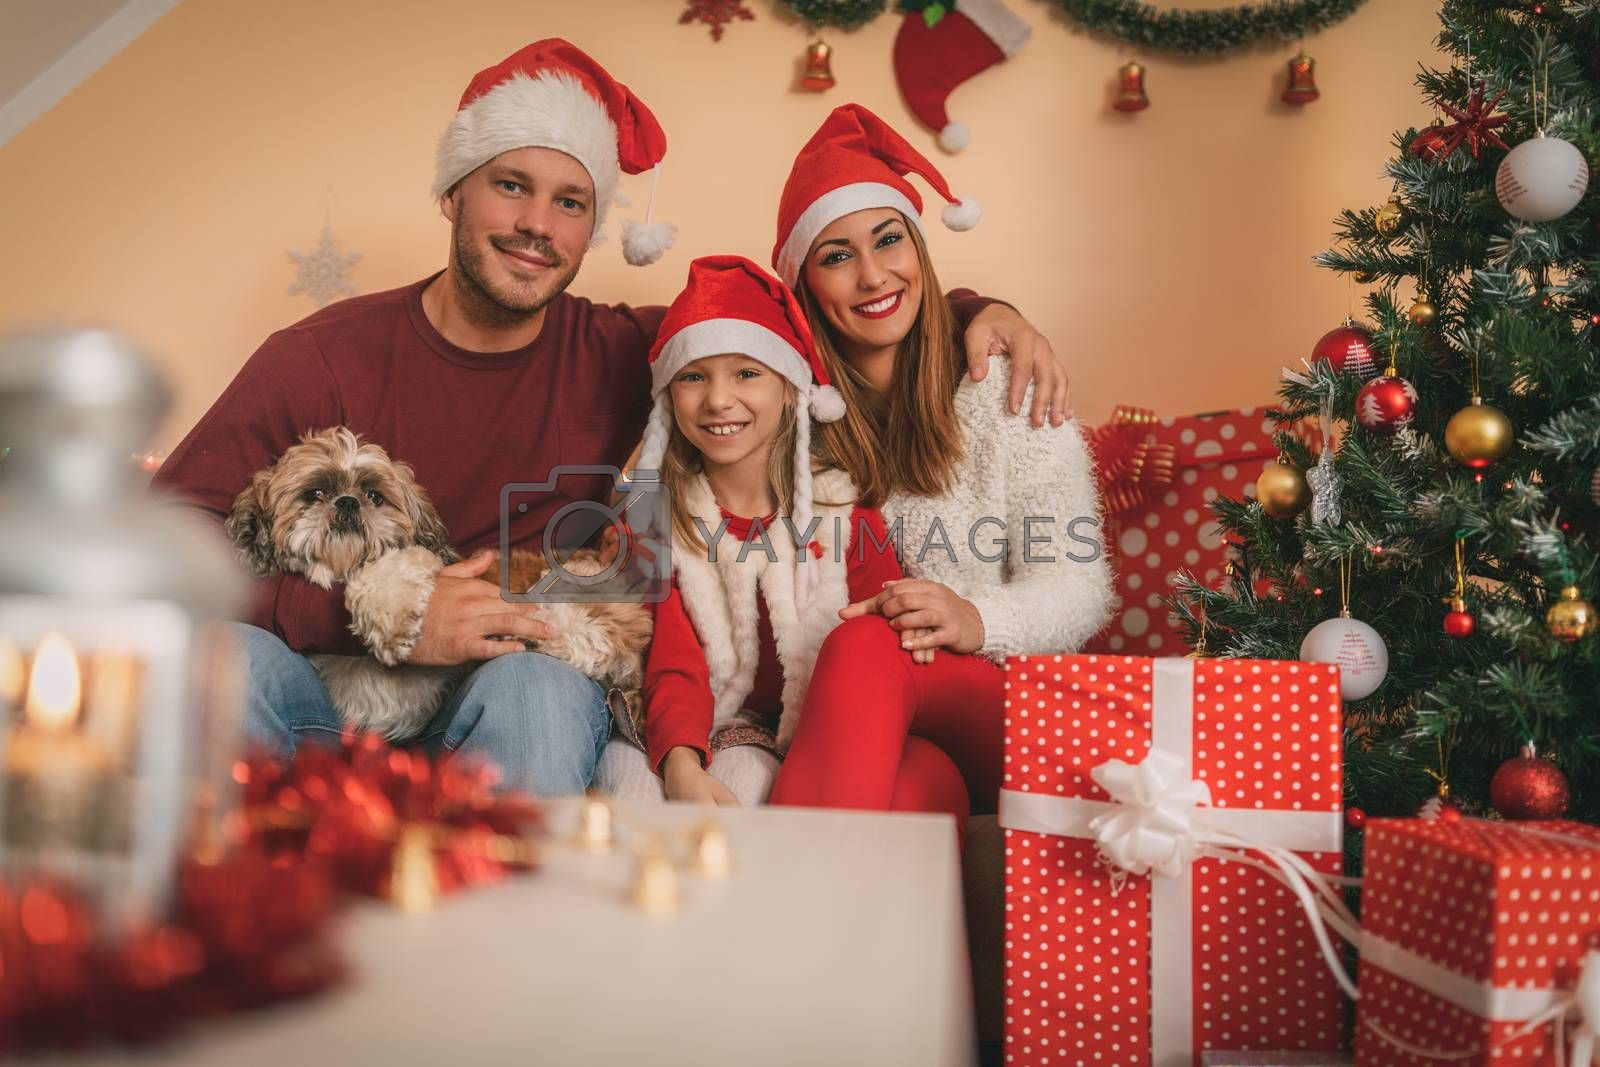 Beautiful happy family with their little dog is gathered together by a Christmas tree and gifts at the home. Looking at camera.